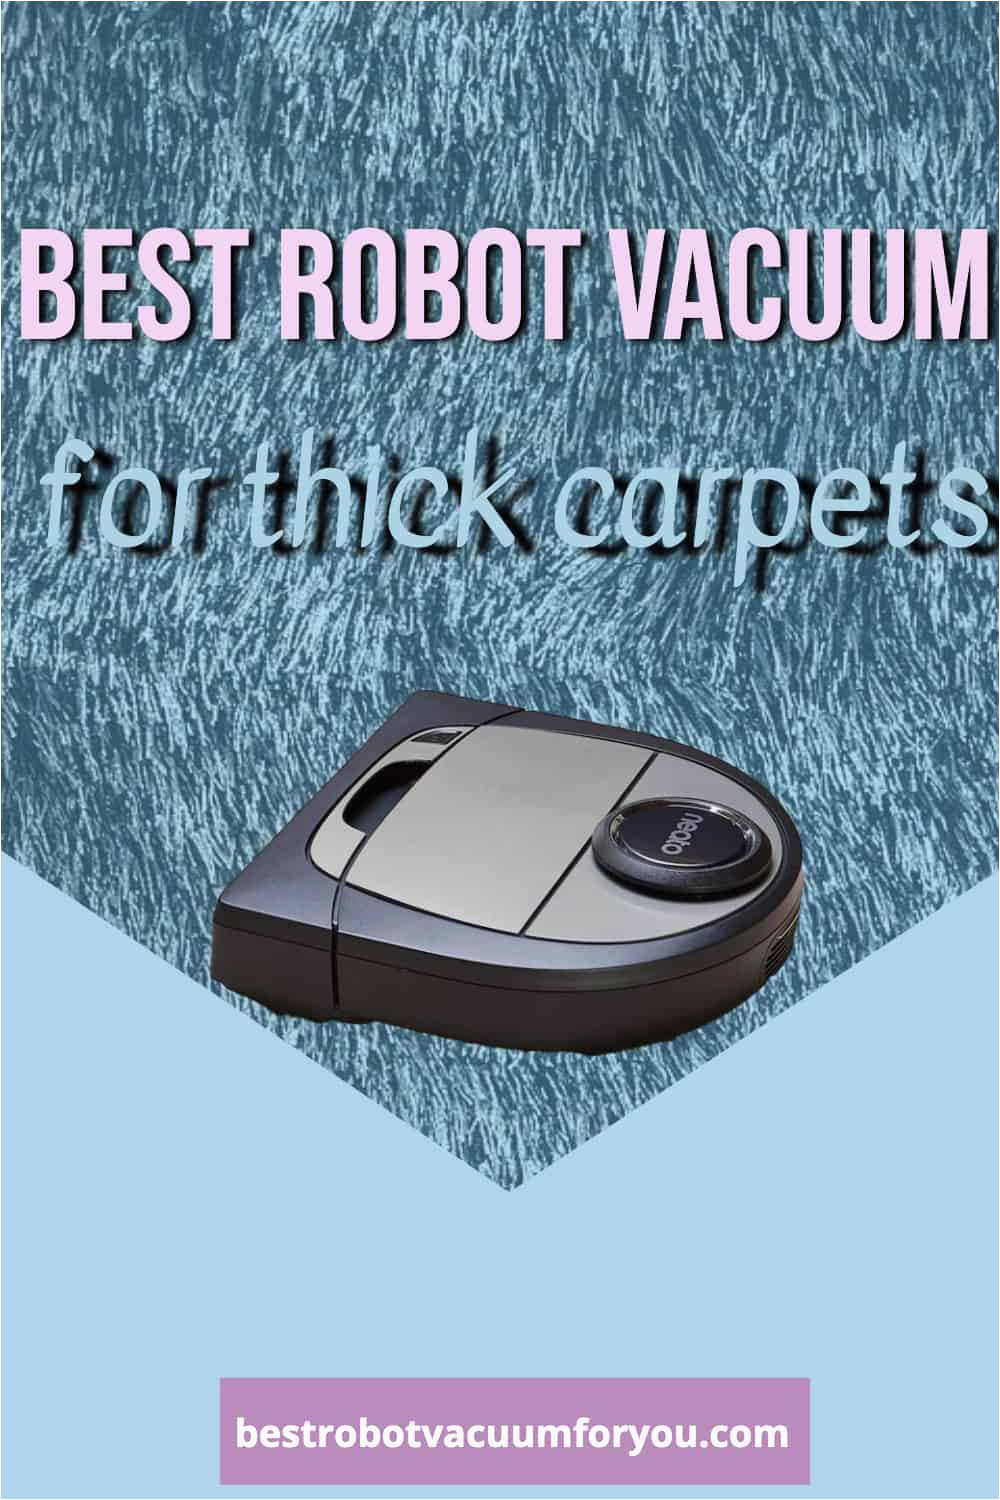 Best Robot Vacuum for Hardwood and area Rugs Best Robot Vacuum for Thick Carpets Best Robot Vacuum for You